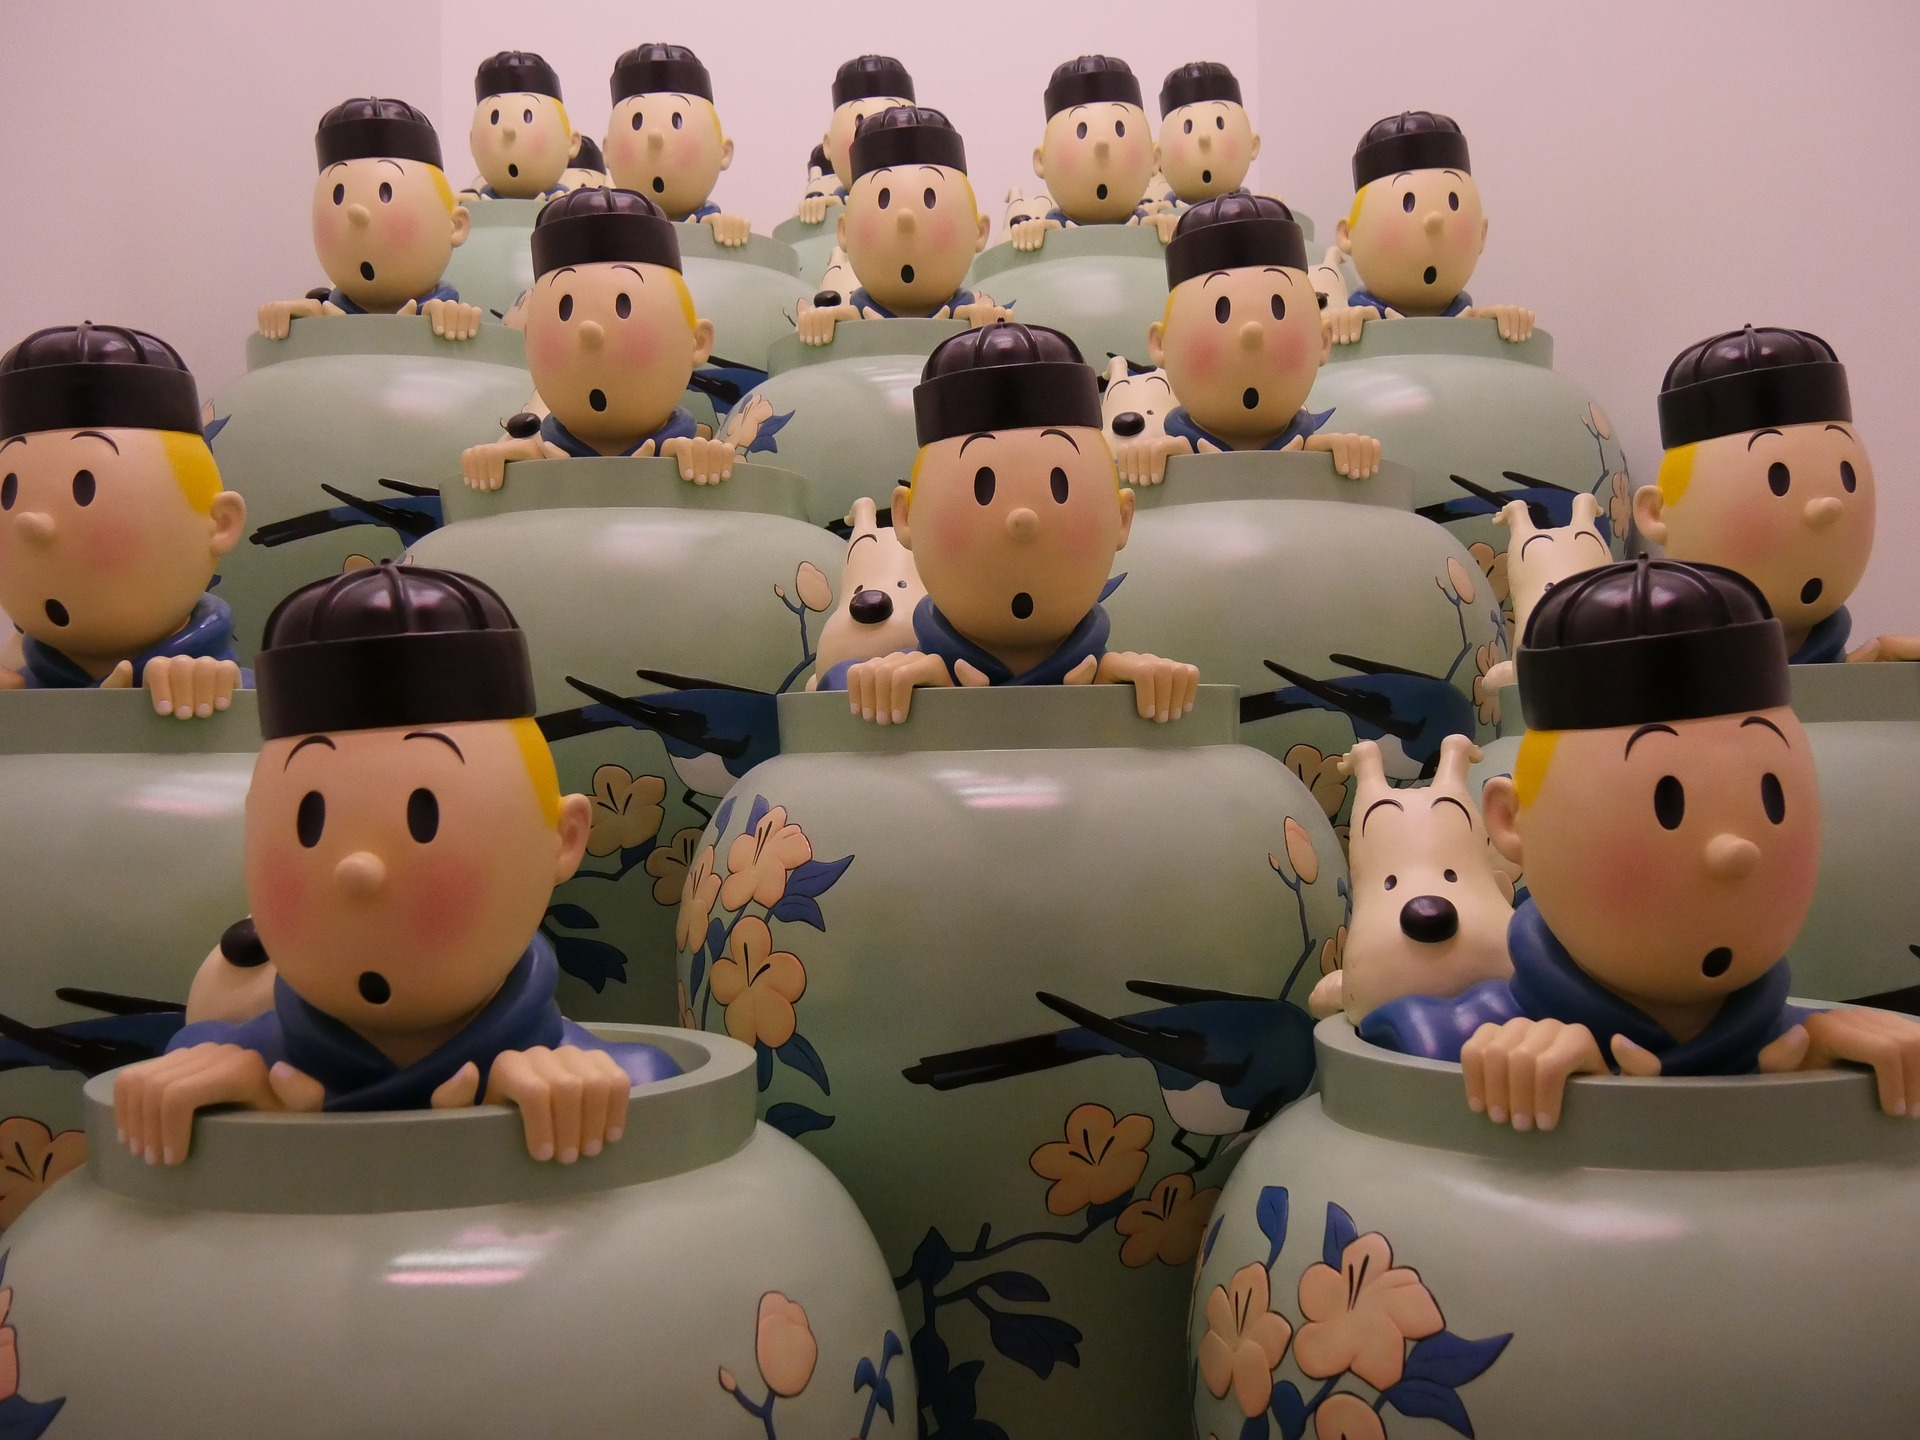 Cartoon figures of boy and dog peeping out of vases